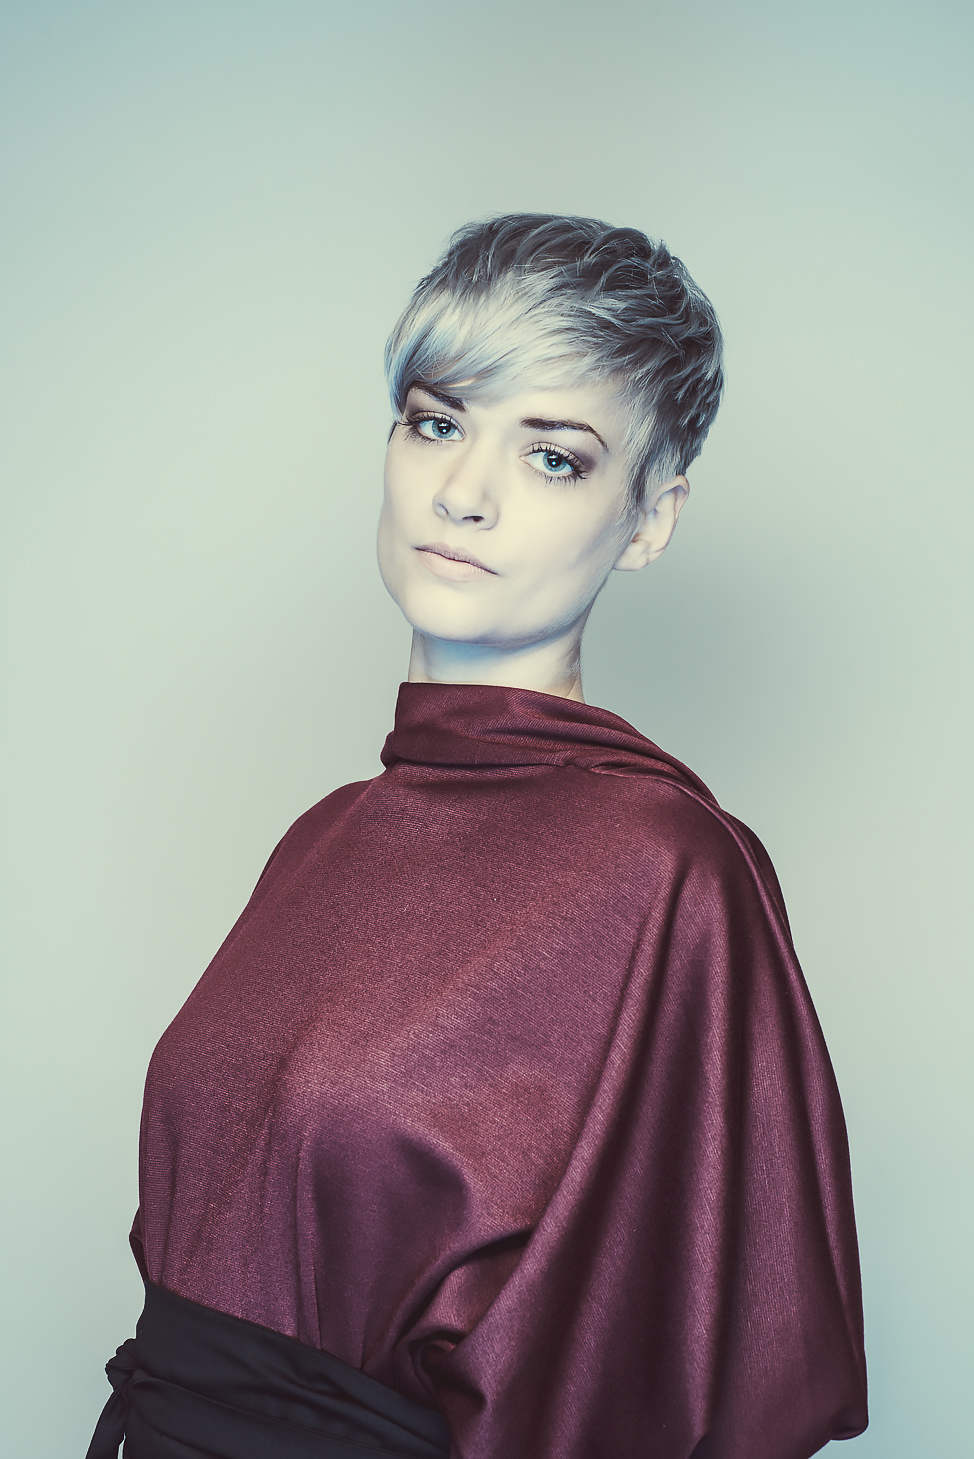 zaramia-ava-zaramiaava-leeds-fashion-designer-ethical-sustainable-tailored-minimalist-aya-burgundy-dress-obi-belt-black-versatile-drape-cowl-styling-womenswear-models-photoshoot-shrine-hairdressers-2